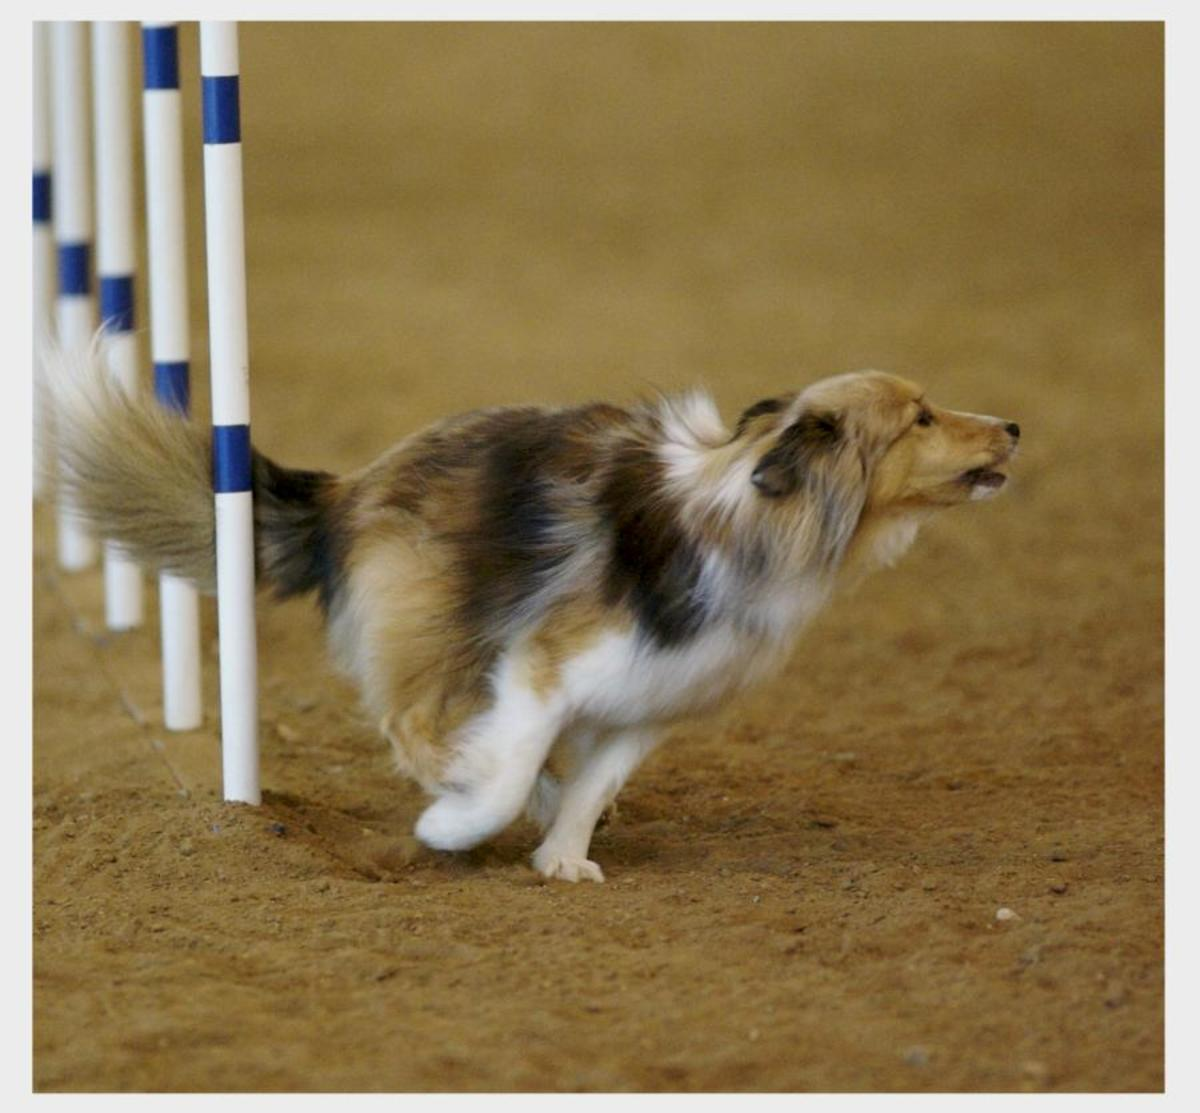 This sheltie is ready to run after exiting the weave poles.